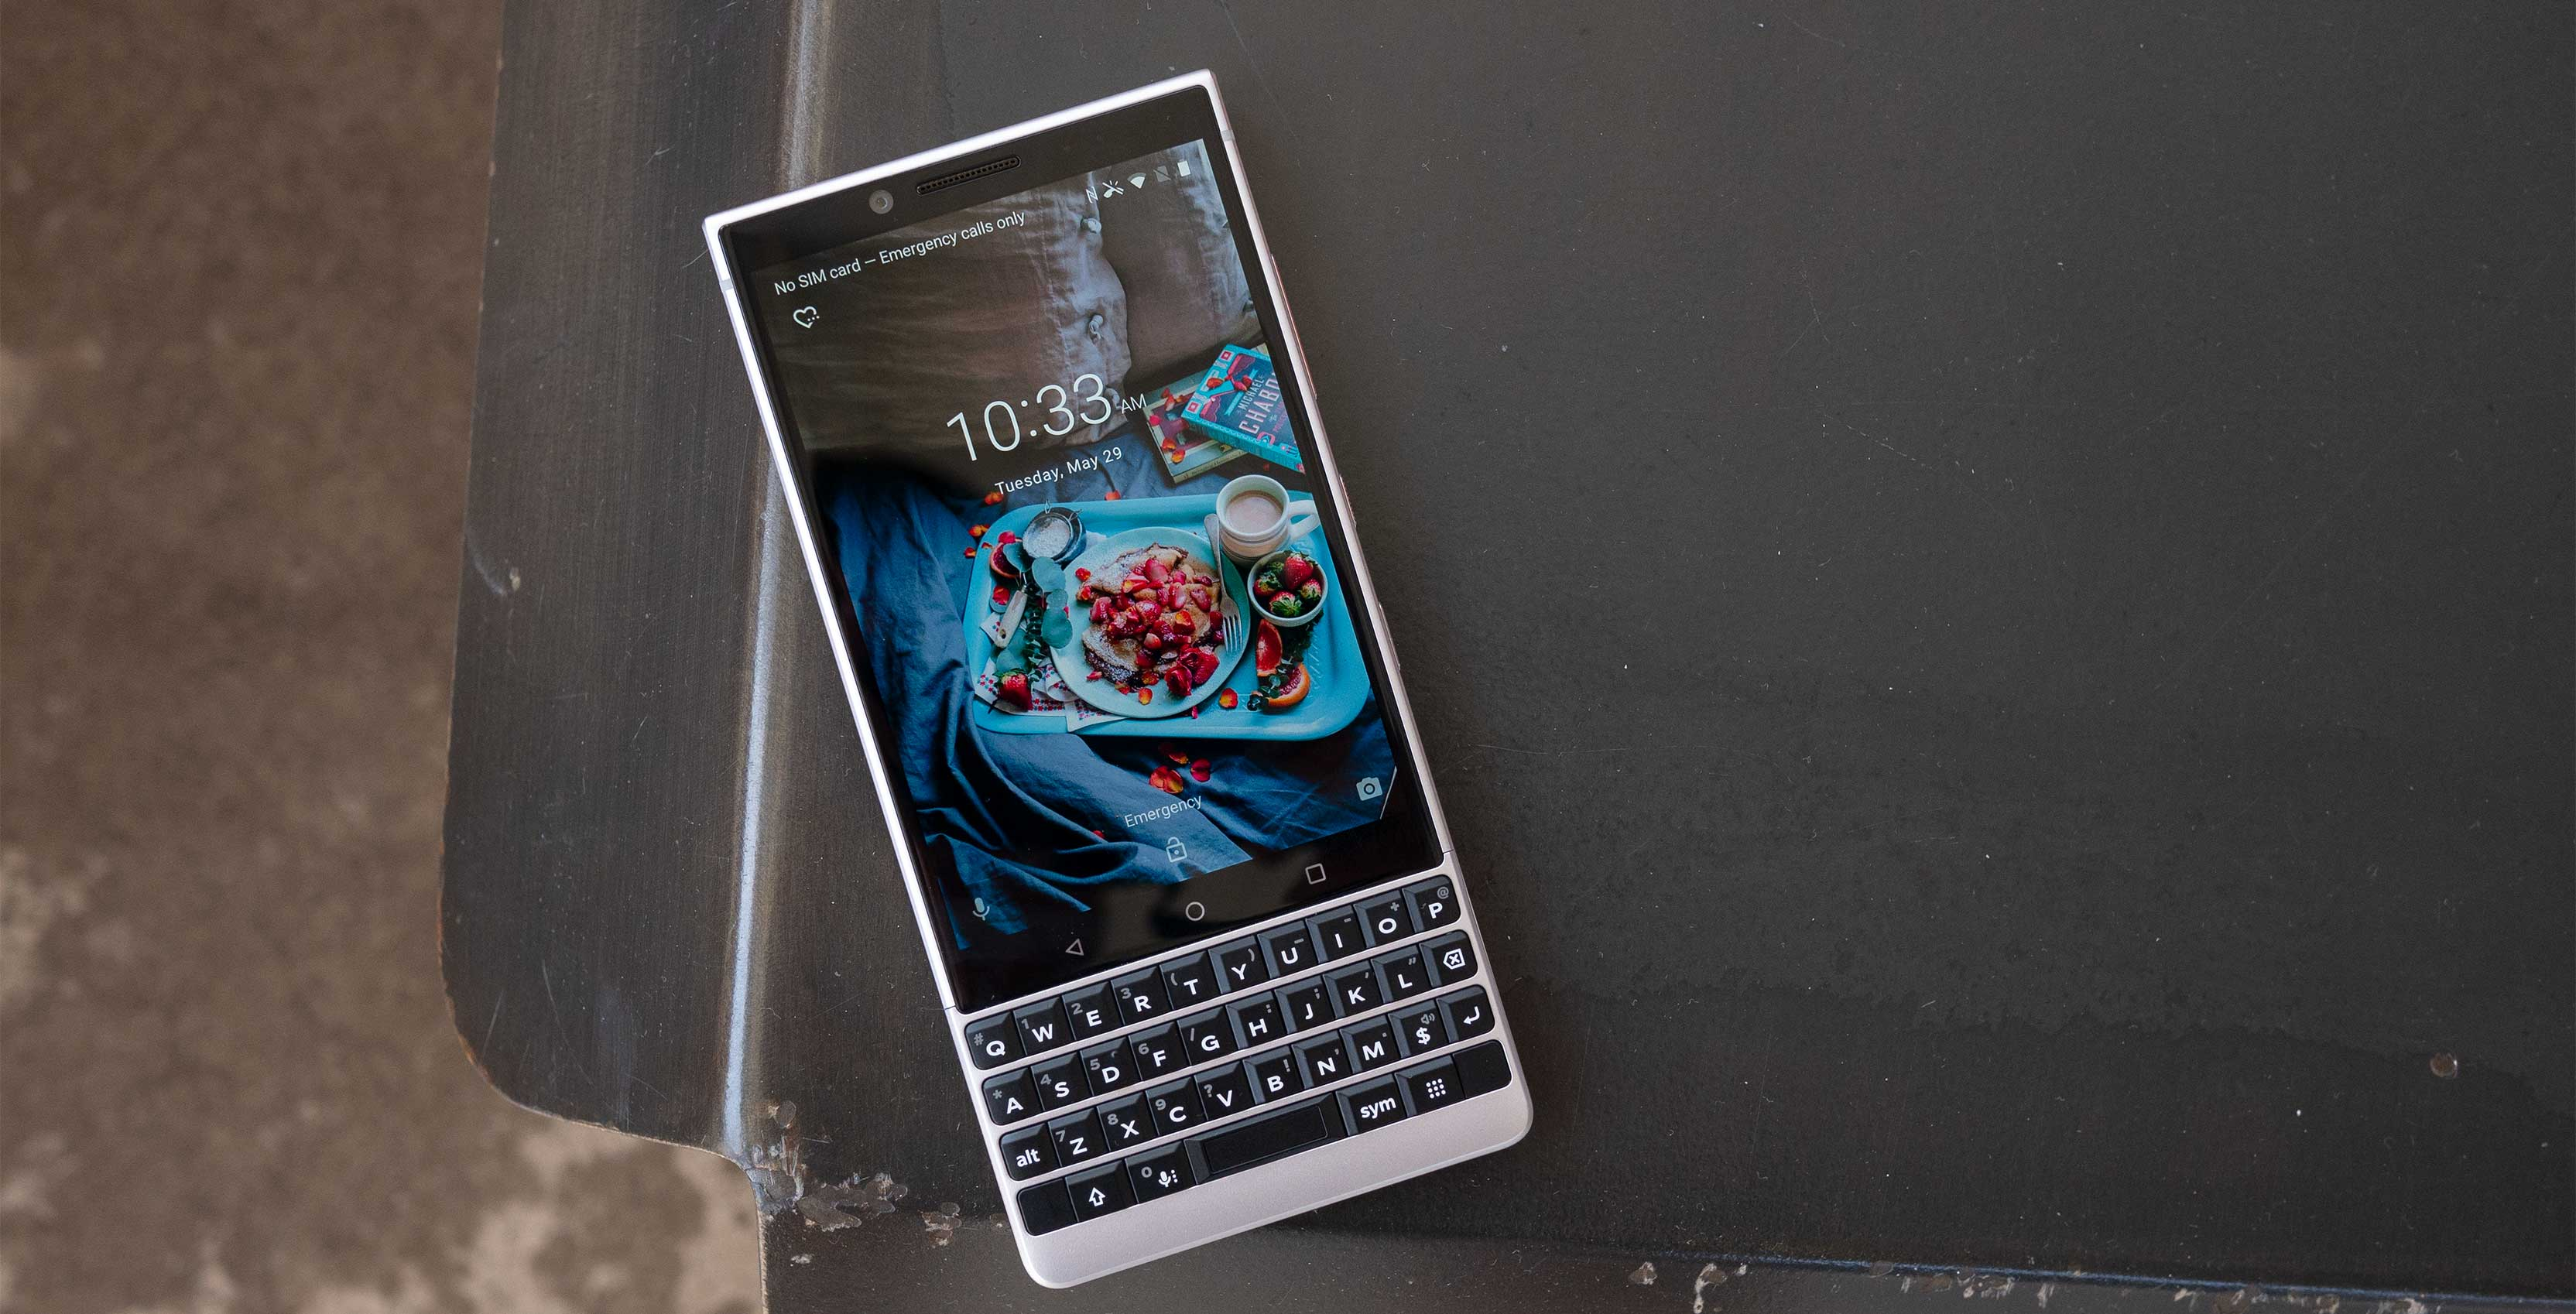 The BlackBerry Key2 smartphone packs extra security and a physical keyboard